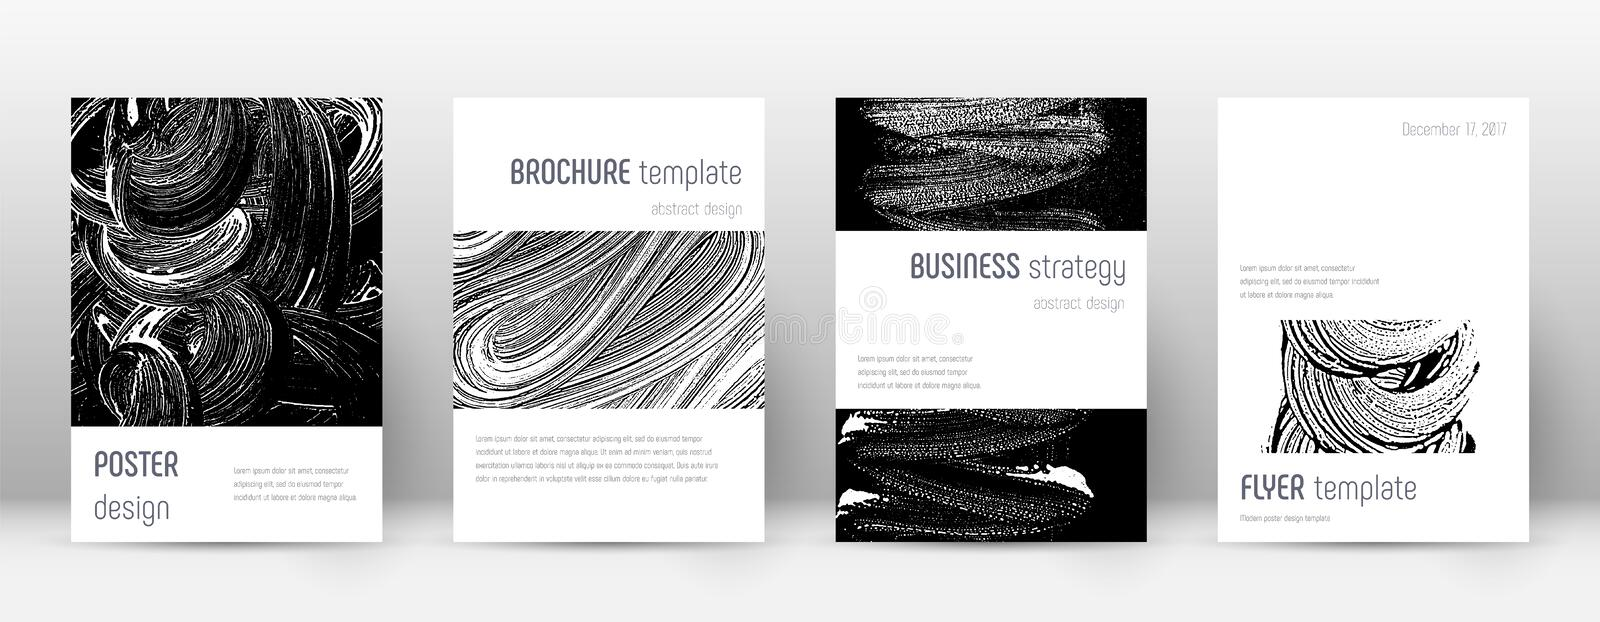 Cover page design template. Minimalistic brochure. Layout. Classic trendy abstract cover page. Black and white grunge texture background. Imaginative poster vector illustration